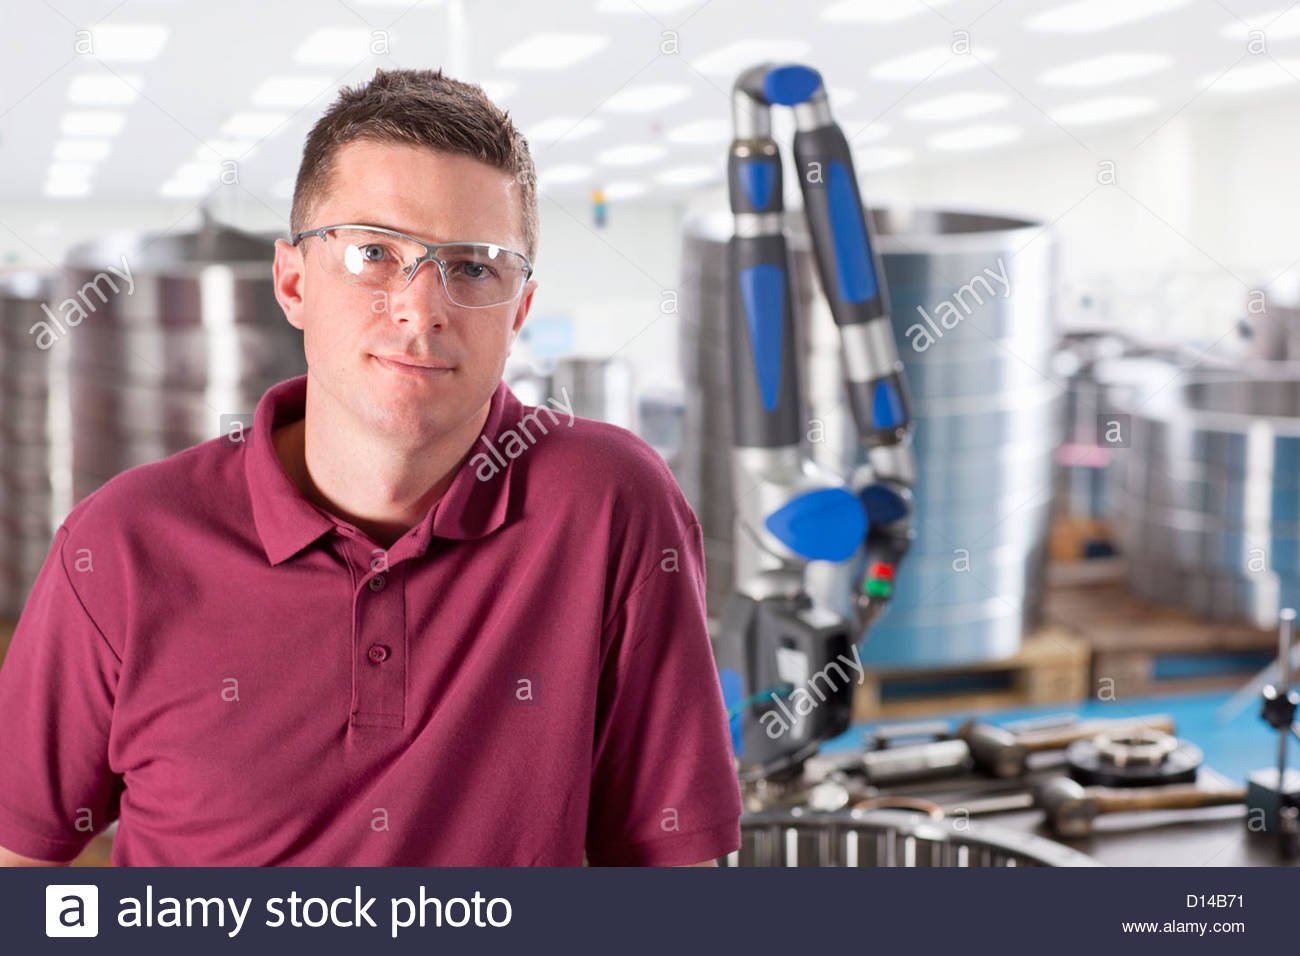 Portrait of smiling technician in steel bearing manufacturing plant - Stock Image